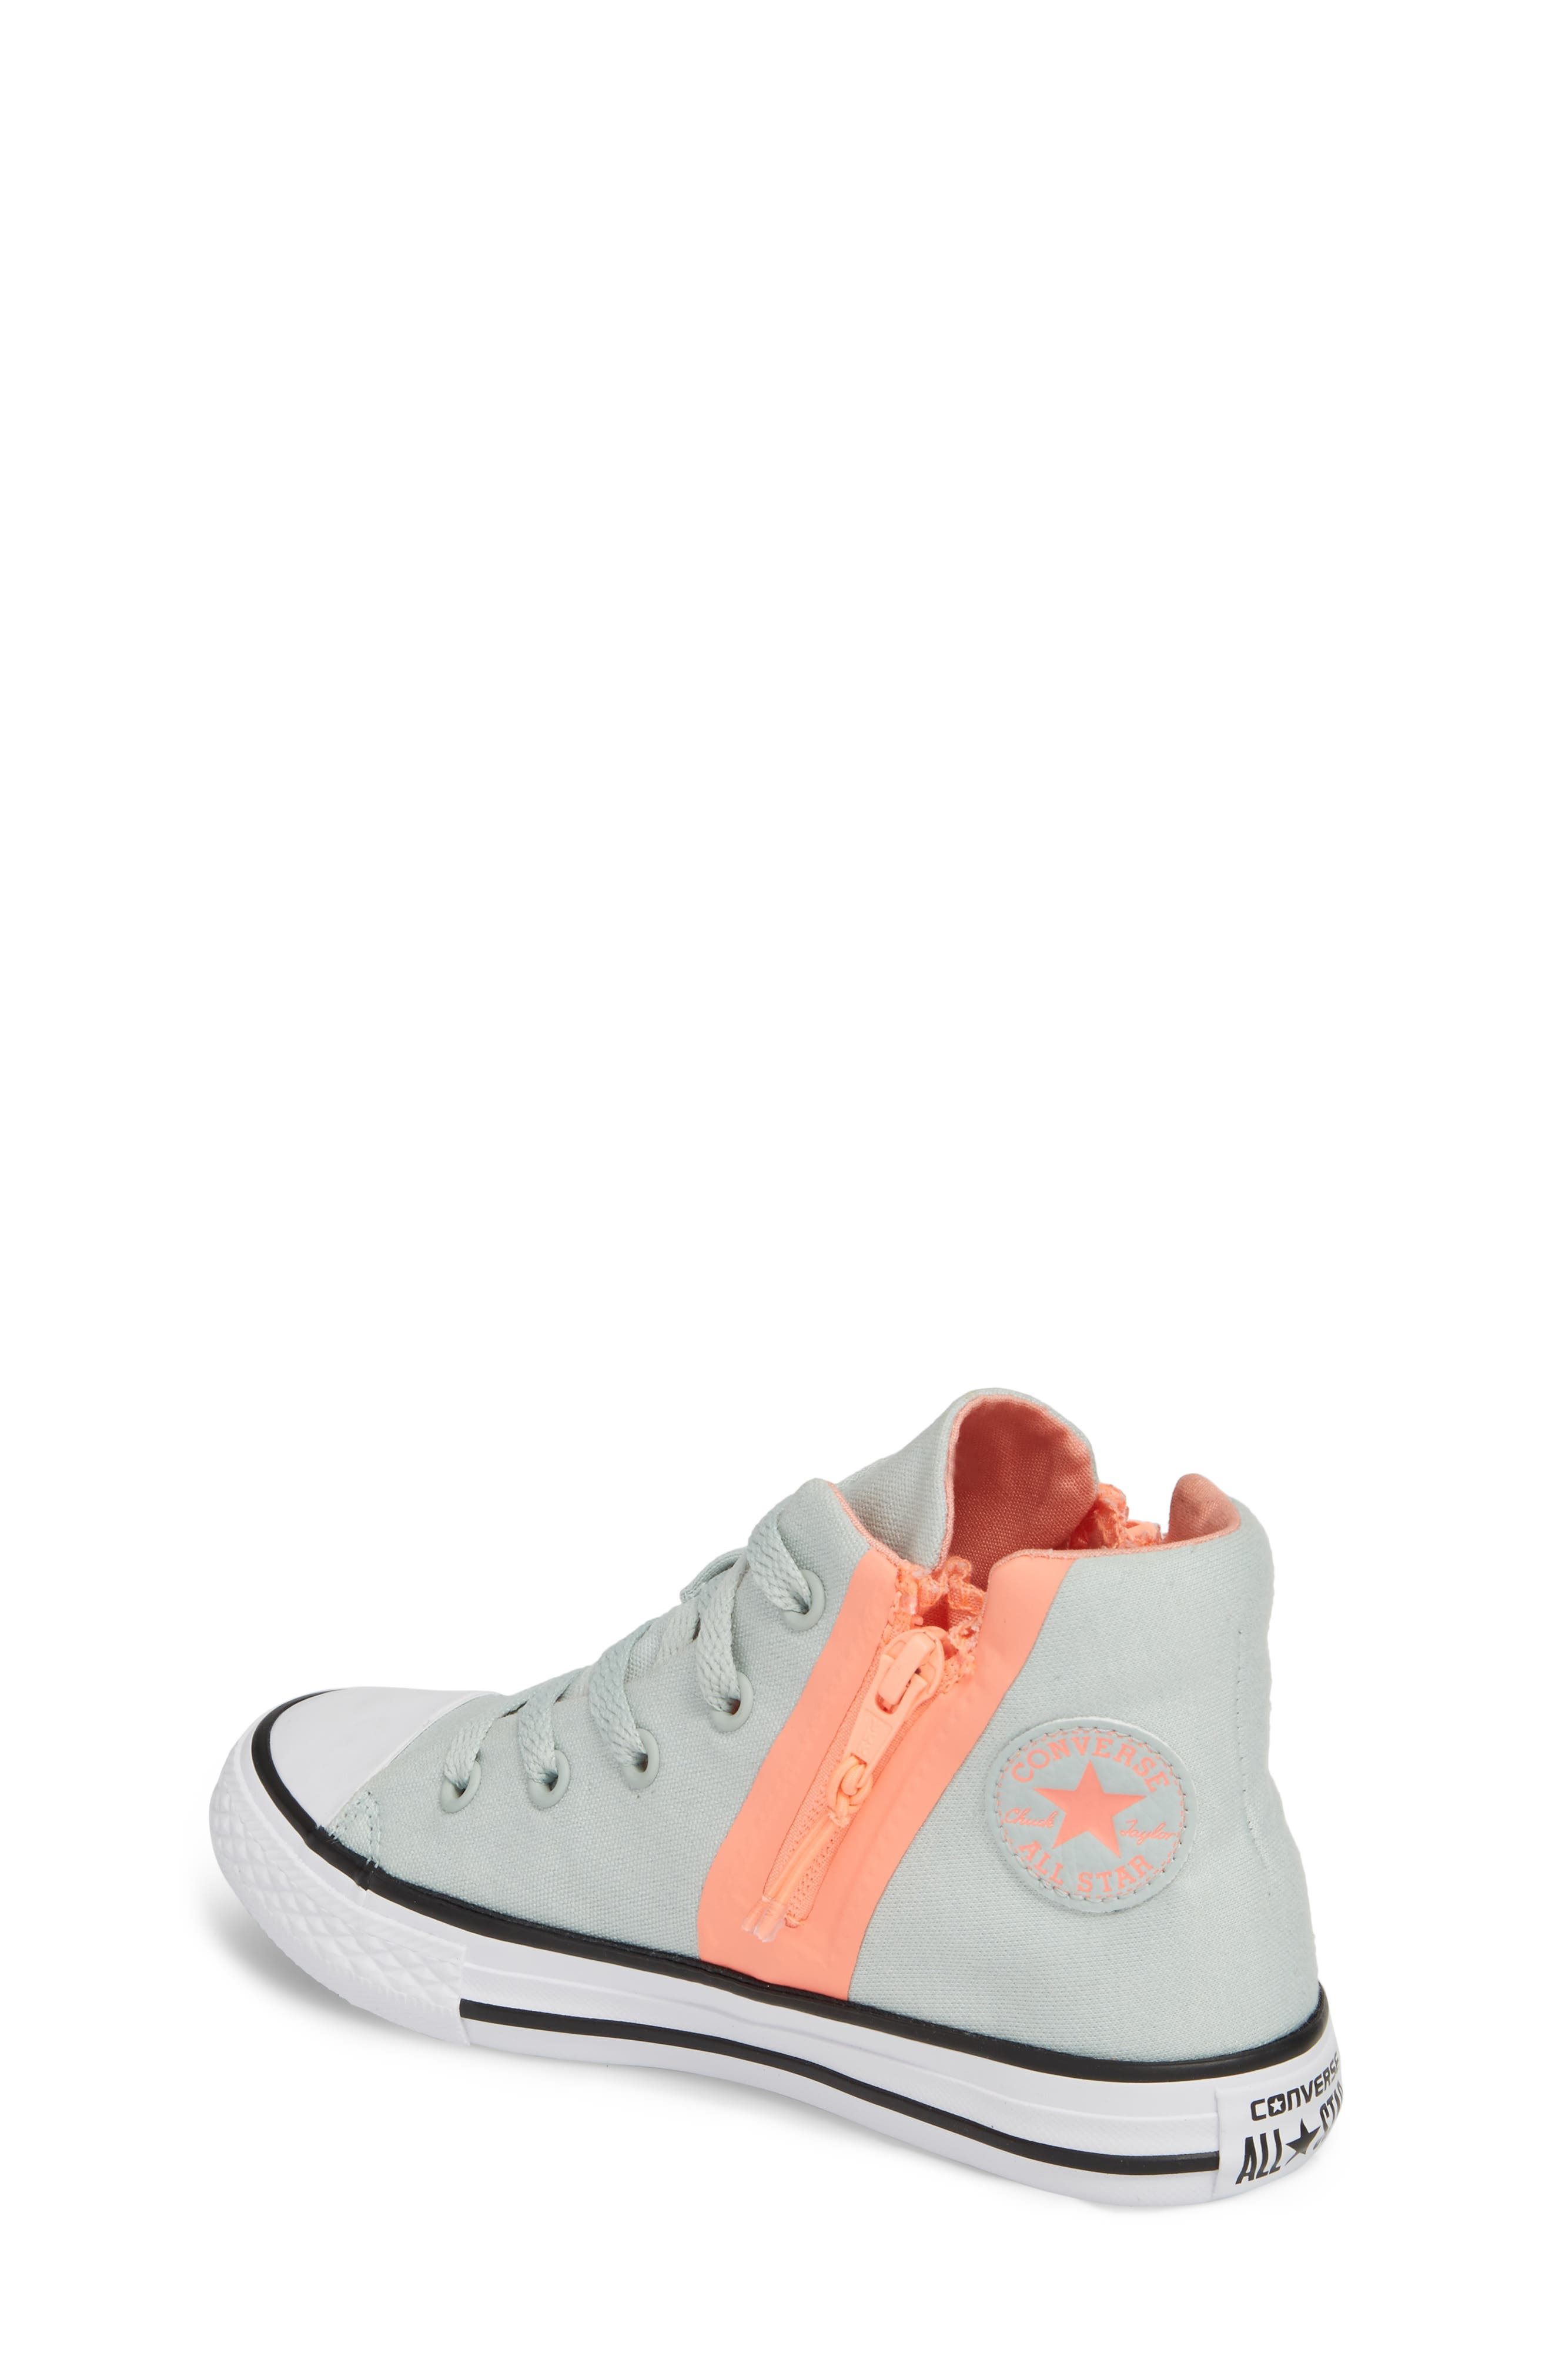 Chuck Taylor<sup>®</sup> All Star<sup>®</sup> Sport Zip High Top Sneaker,                             Alternate thumbnail 2, color,                             416